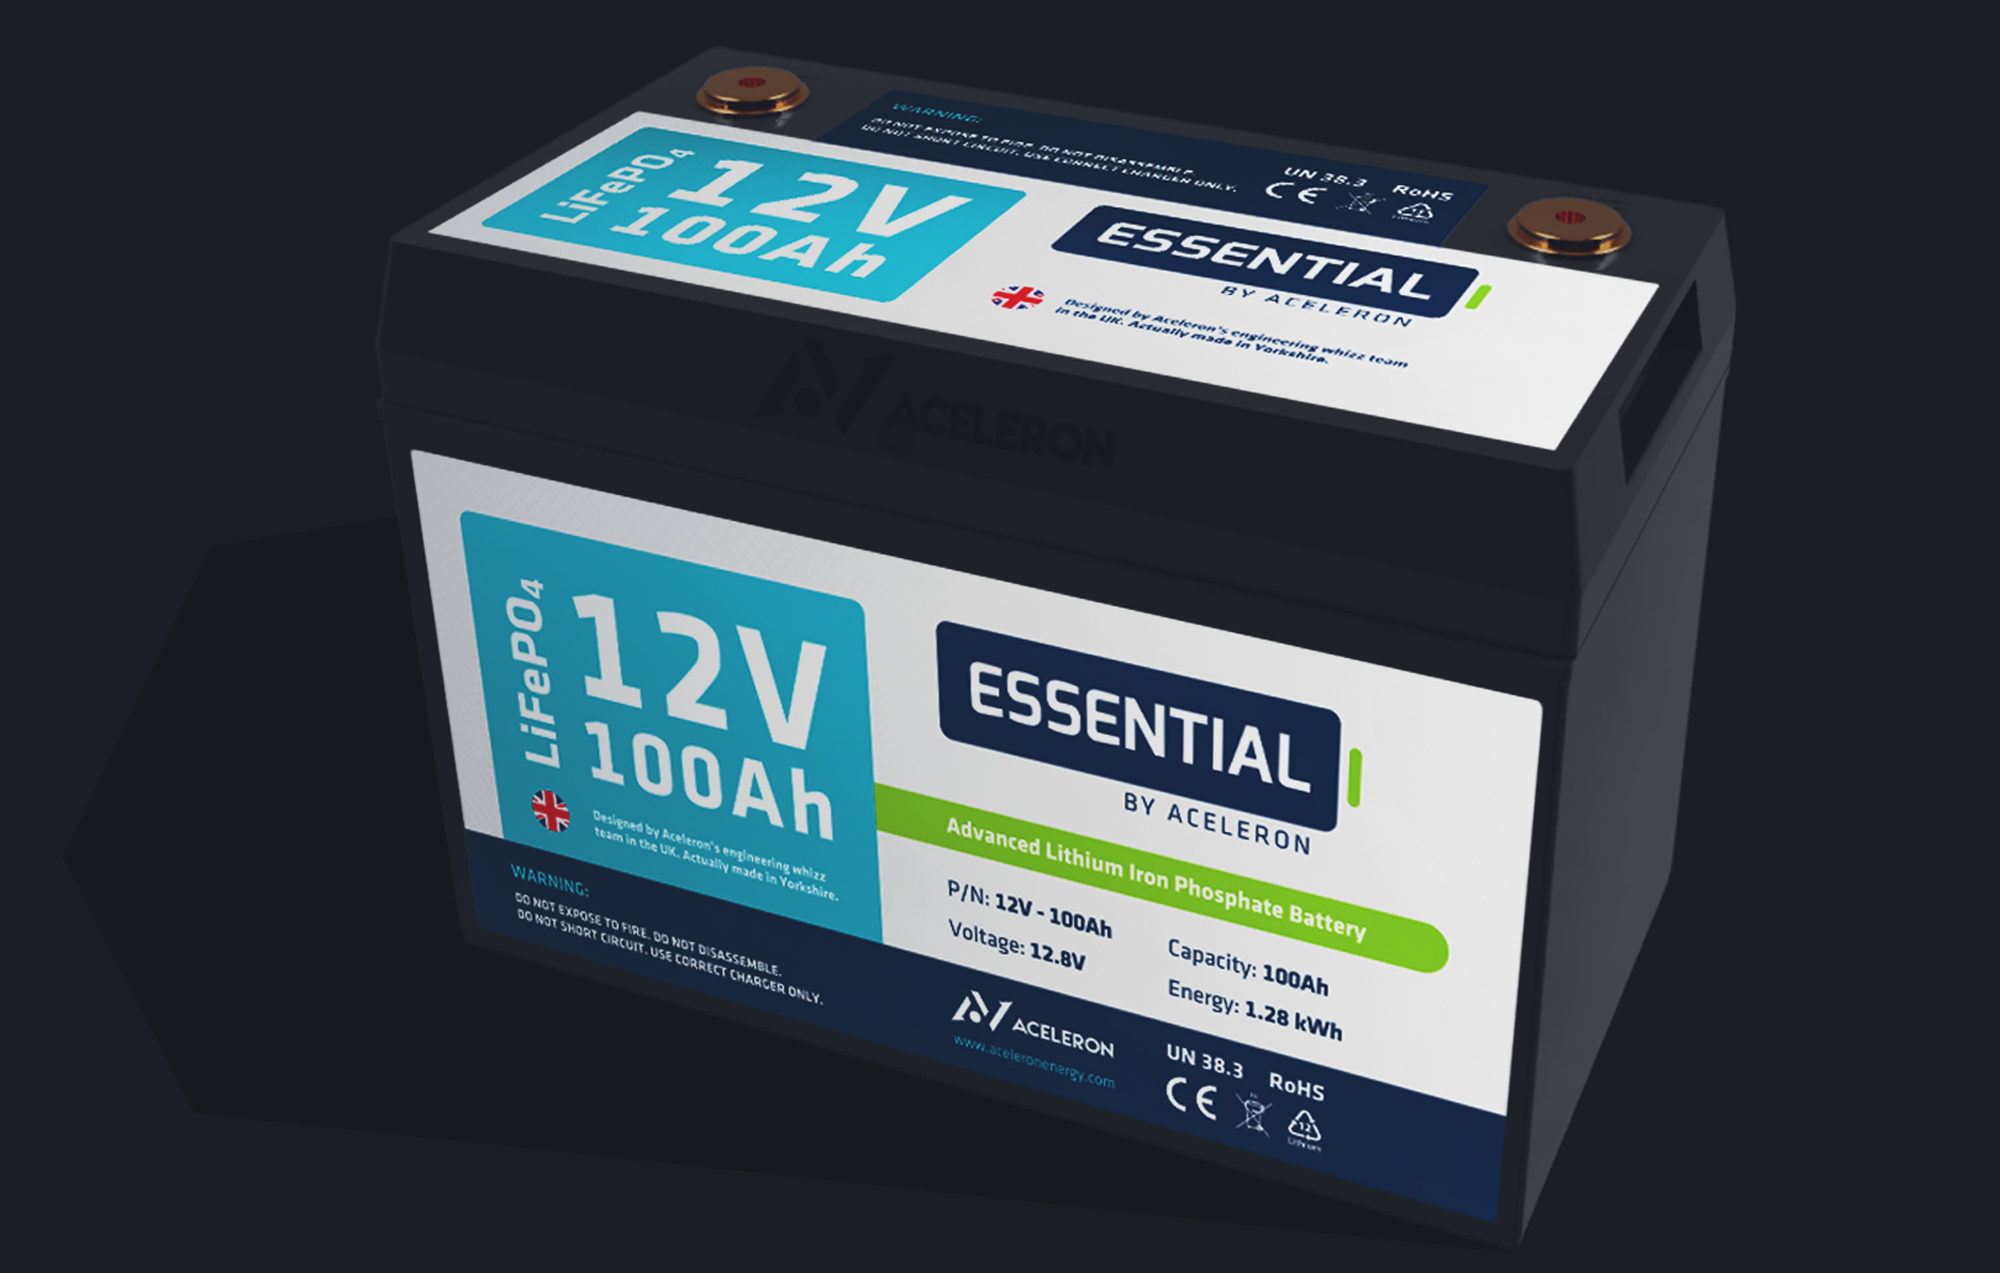 12V 100Ah Essential battery by Aceleron